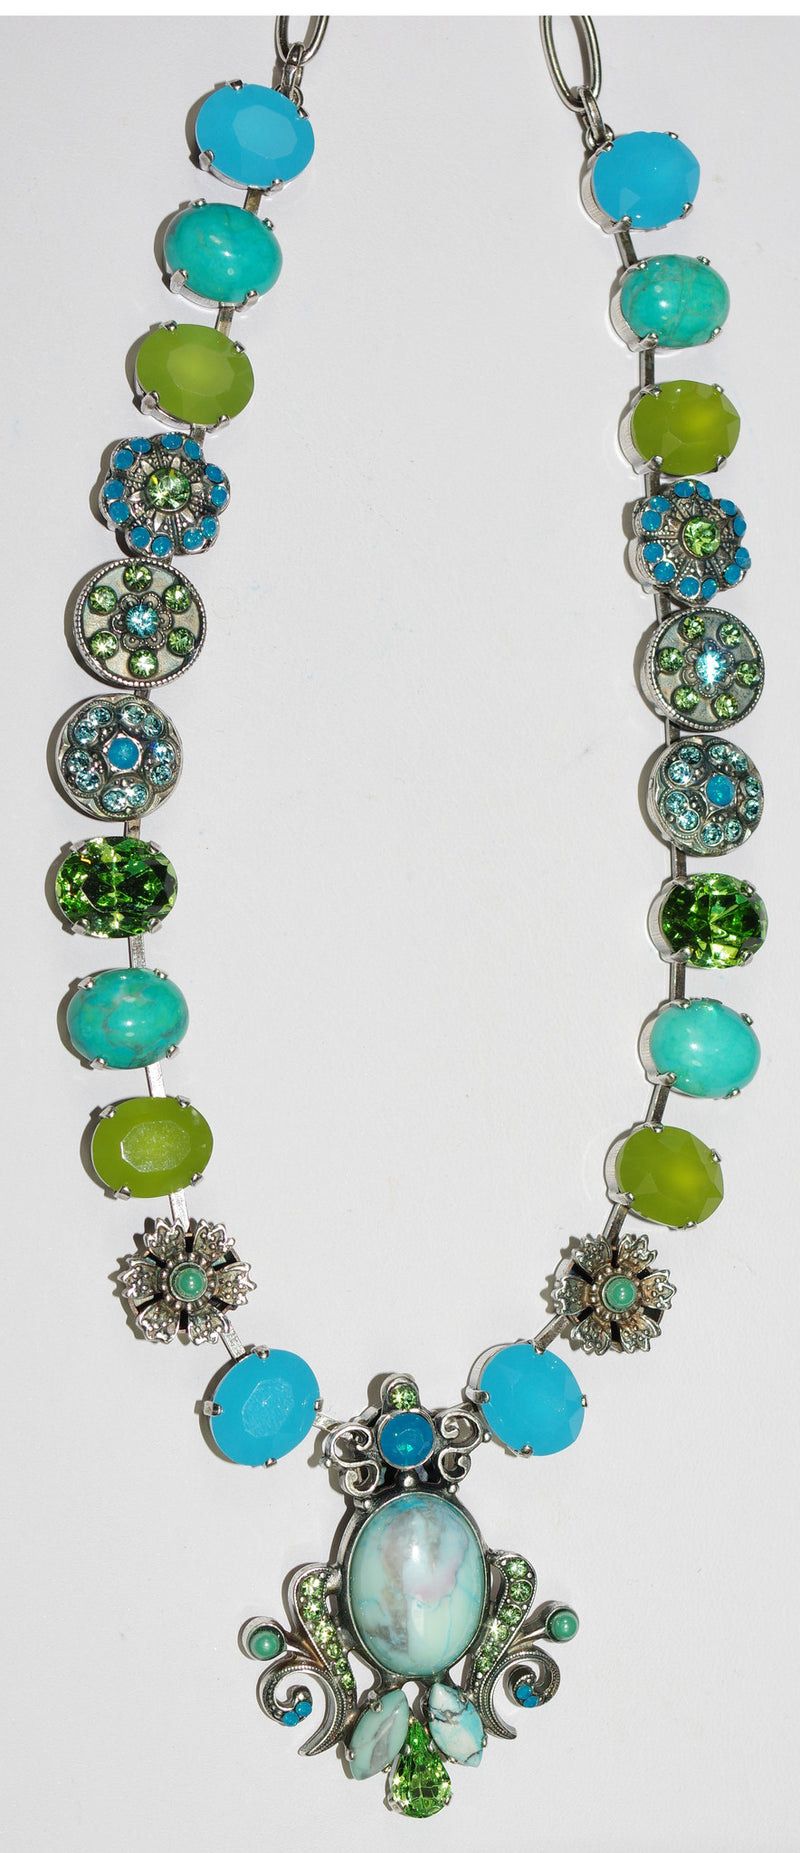 "MARIANA NECKLACE CAPRIOSKA: green, blue stones in silver setting, center pendant = 1.75"", 22"" adjustable chain"